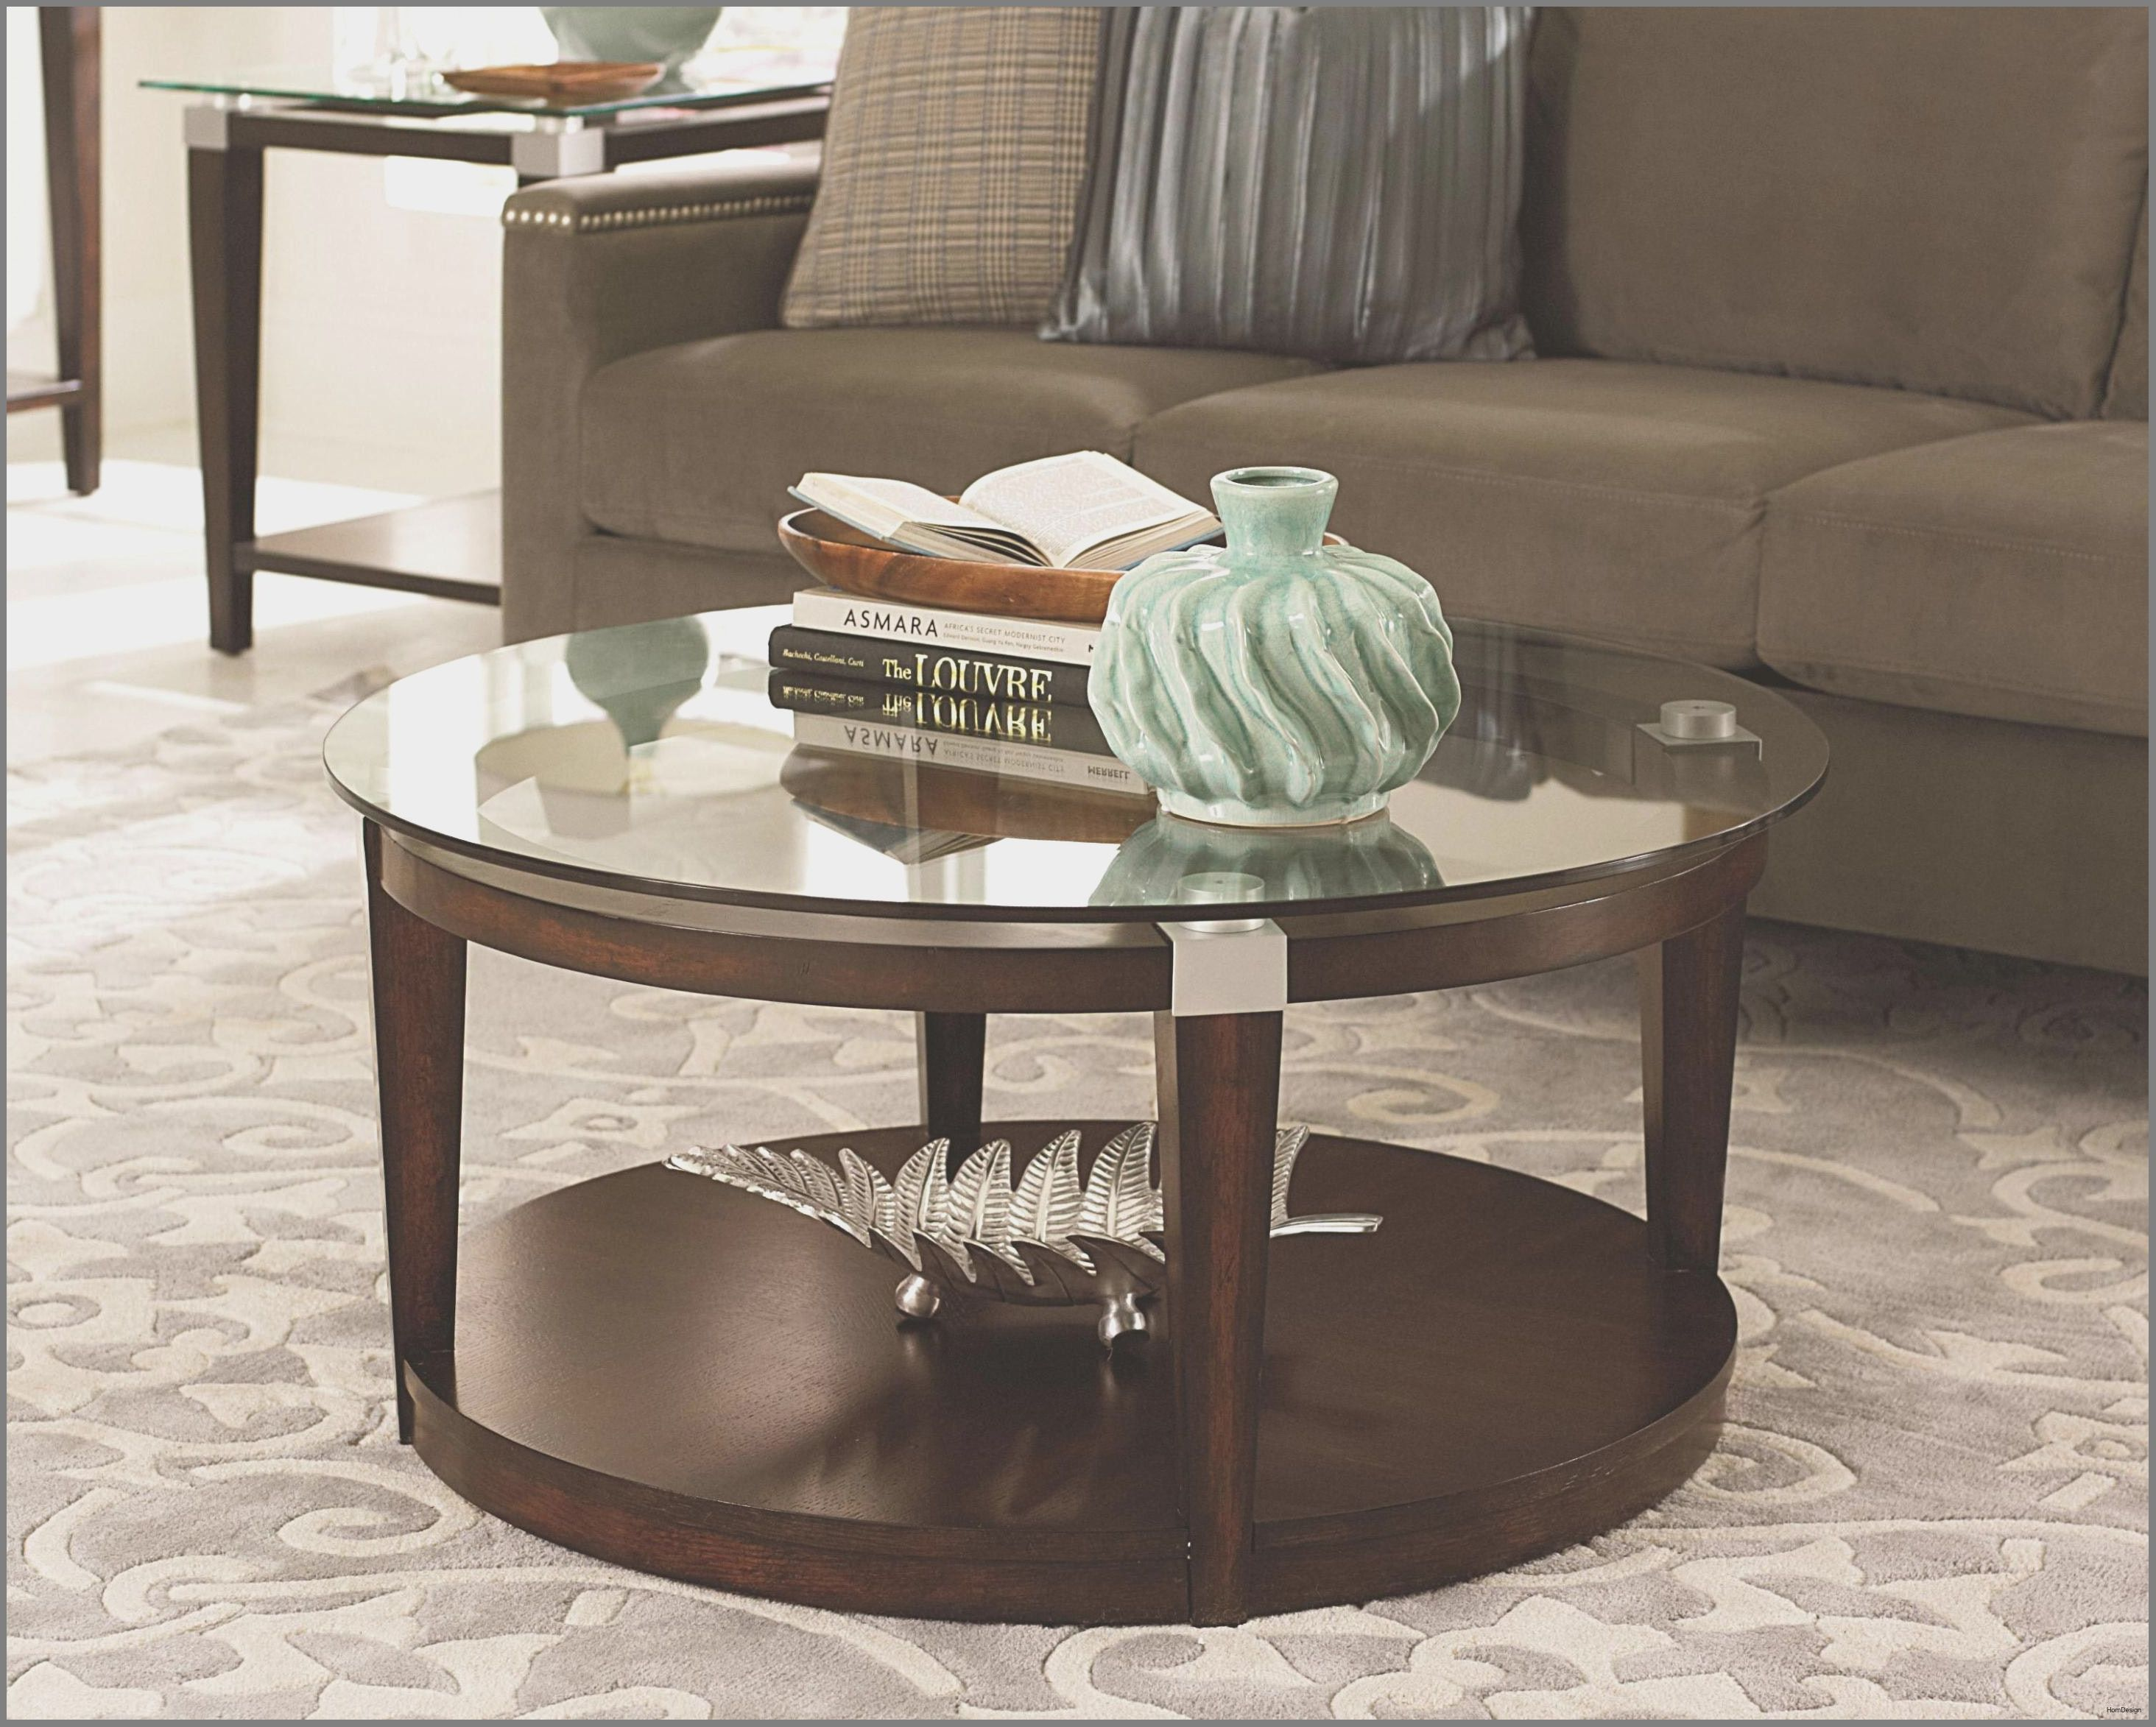 amazing round coffee table living room tables ideas end decor stanley furniture bedroom set ashley corner stylish pet crates stone magnolia kitchen fancy dining modern with stools